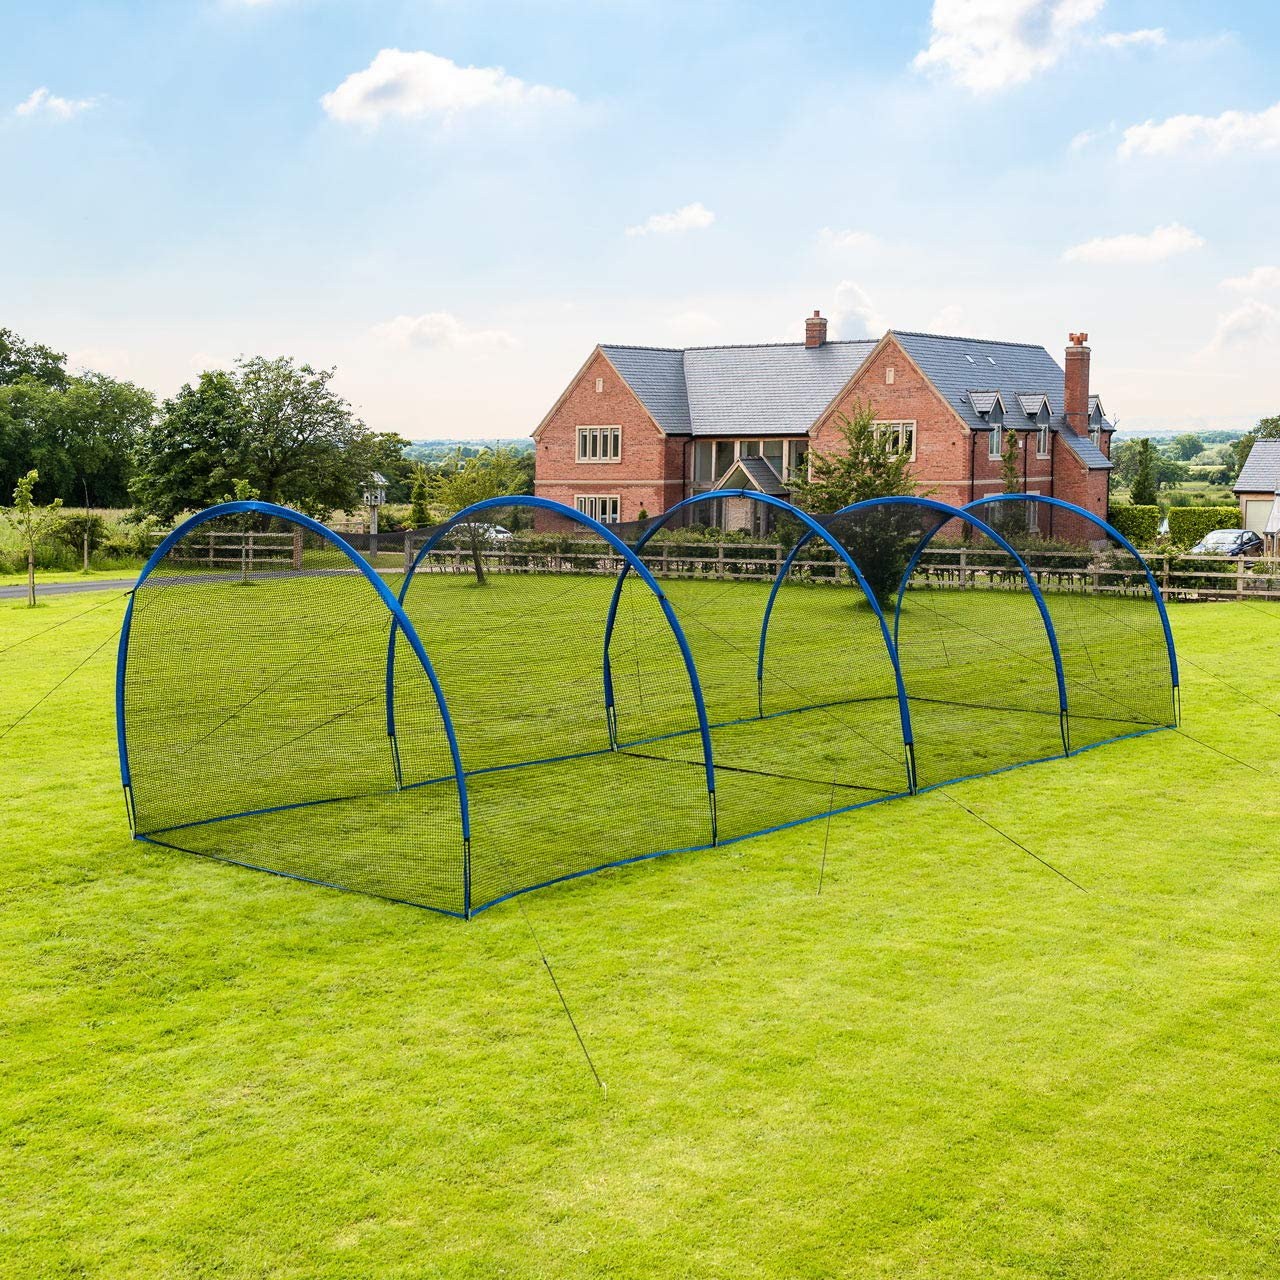 Fortress Pop-Up Baseball Batting Cage - Backyard Batting & Pitching Practice [20ft Or 40ft] (40ft Batting Cage) by Fortress